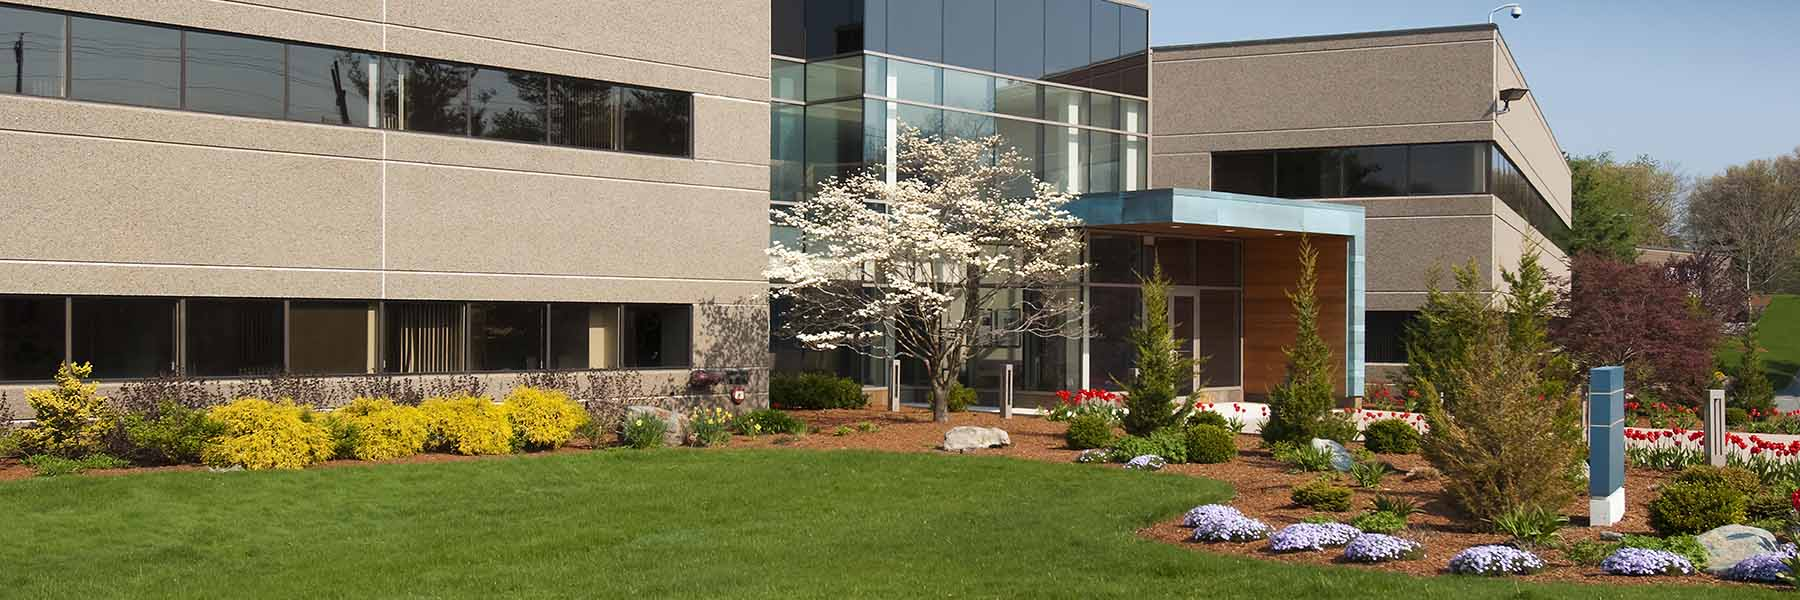 Header_0005_Chantilly-Commercial-Landscaping